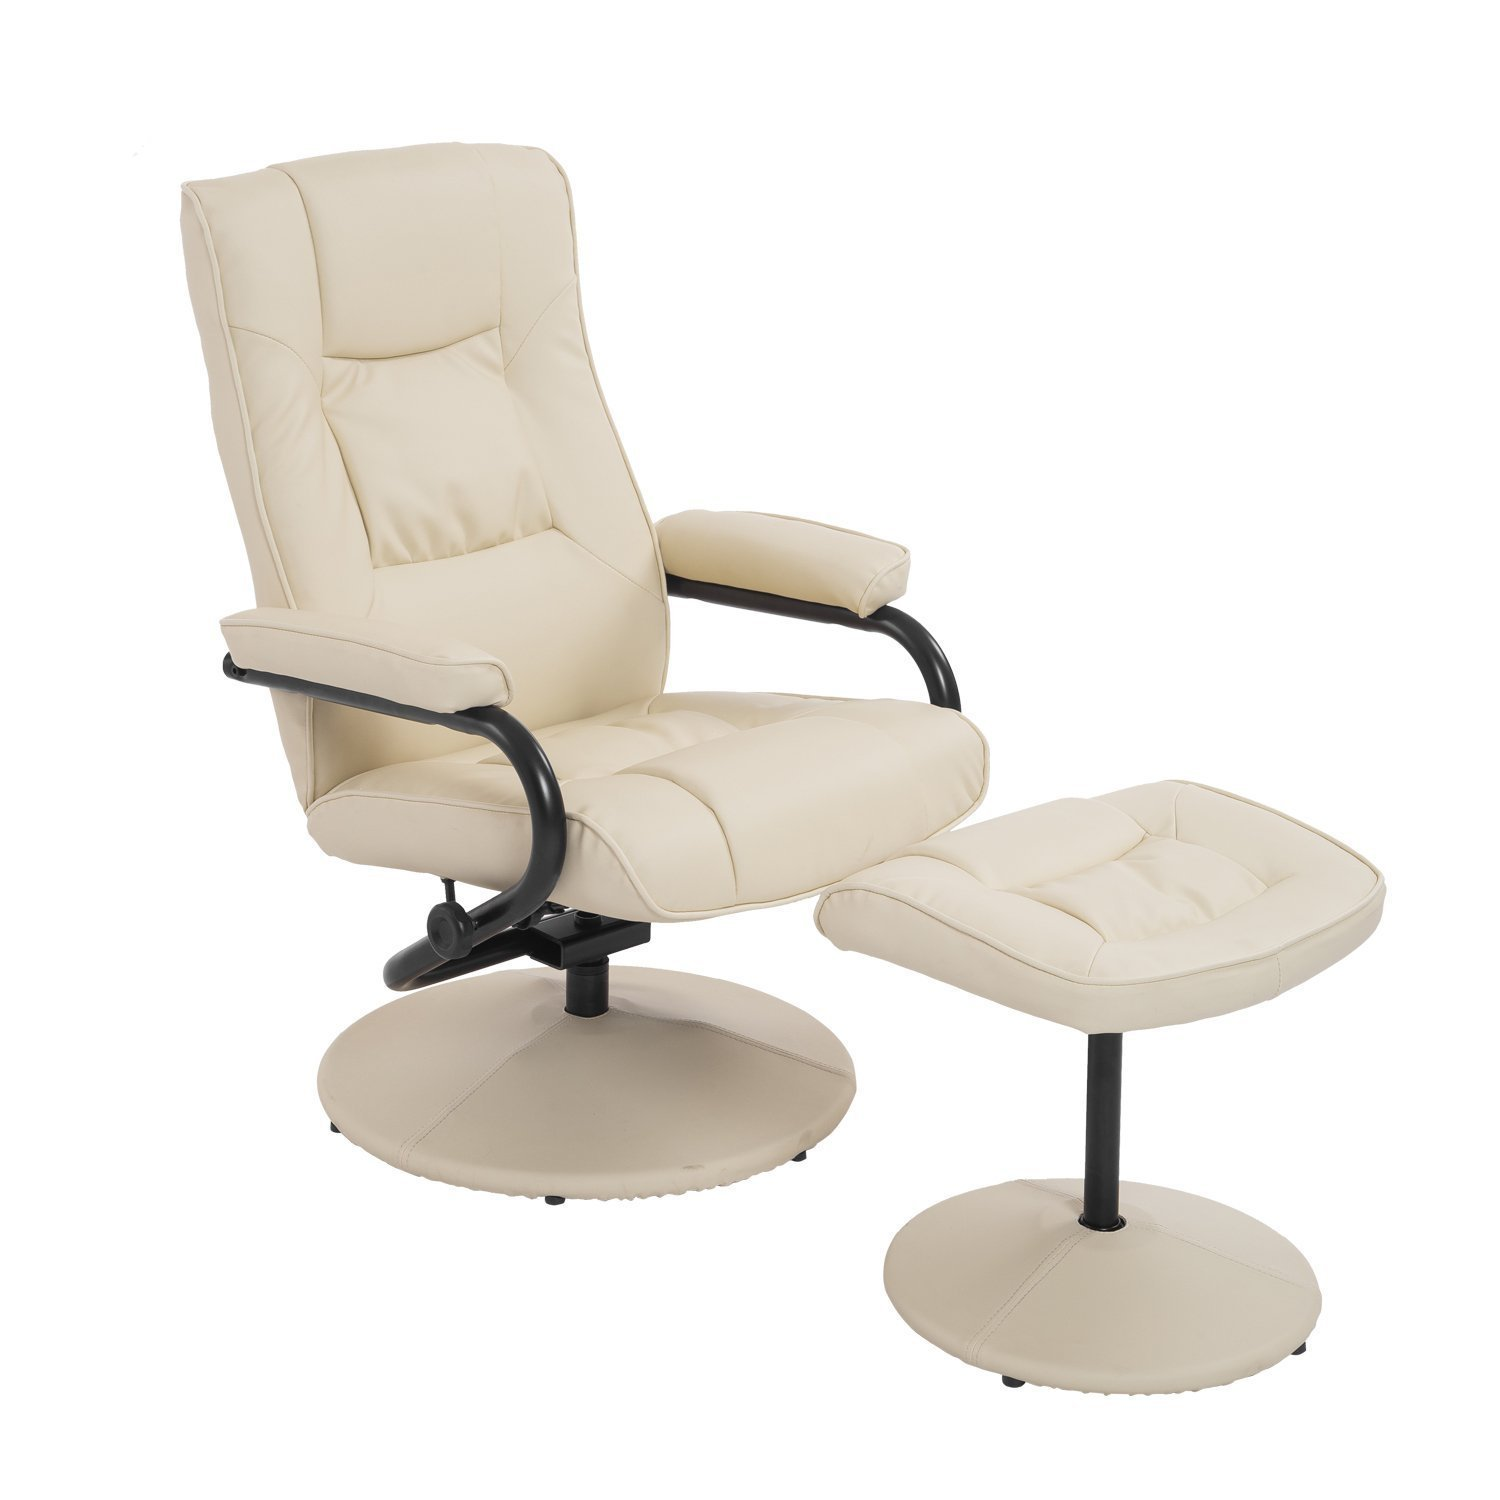 HomCom Ergonomic Faux Leather Lounge Armchair Recliner And Ottoman Set - Cream White by HOMCOM